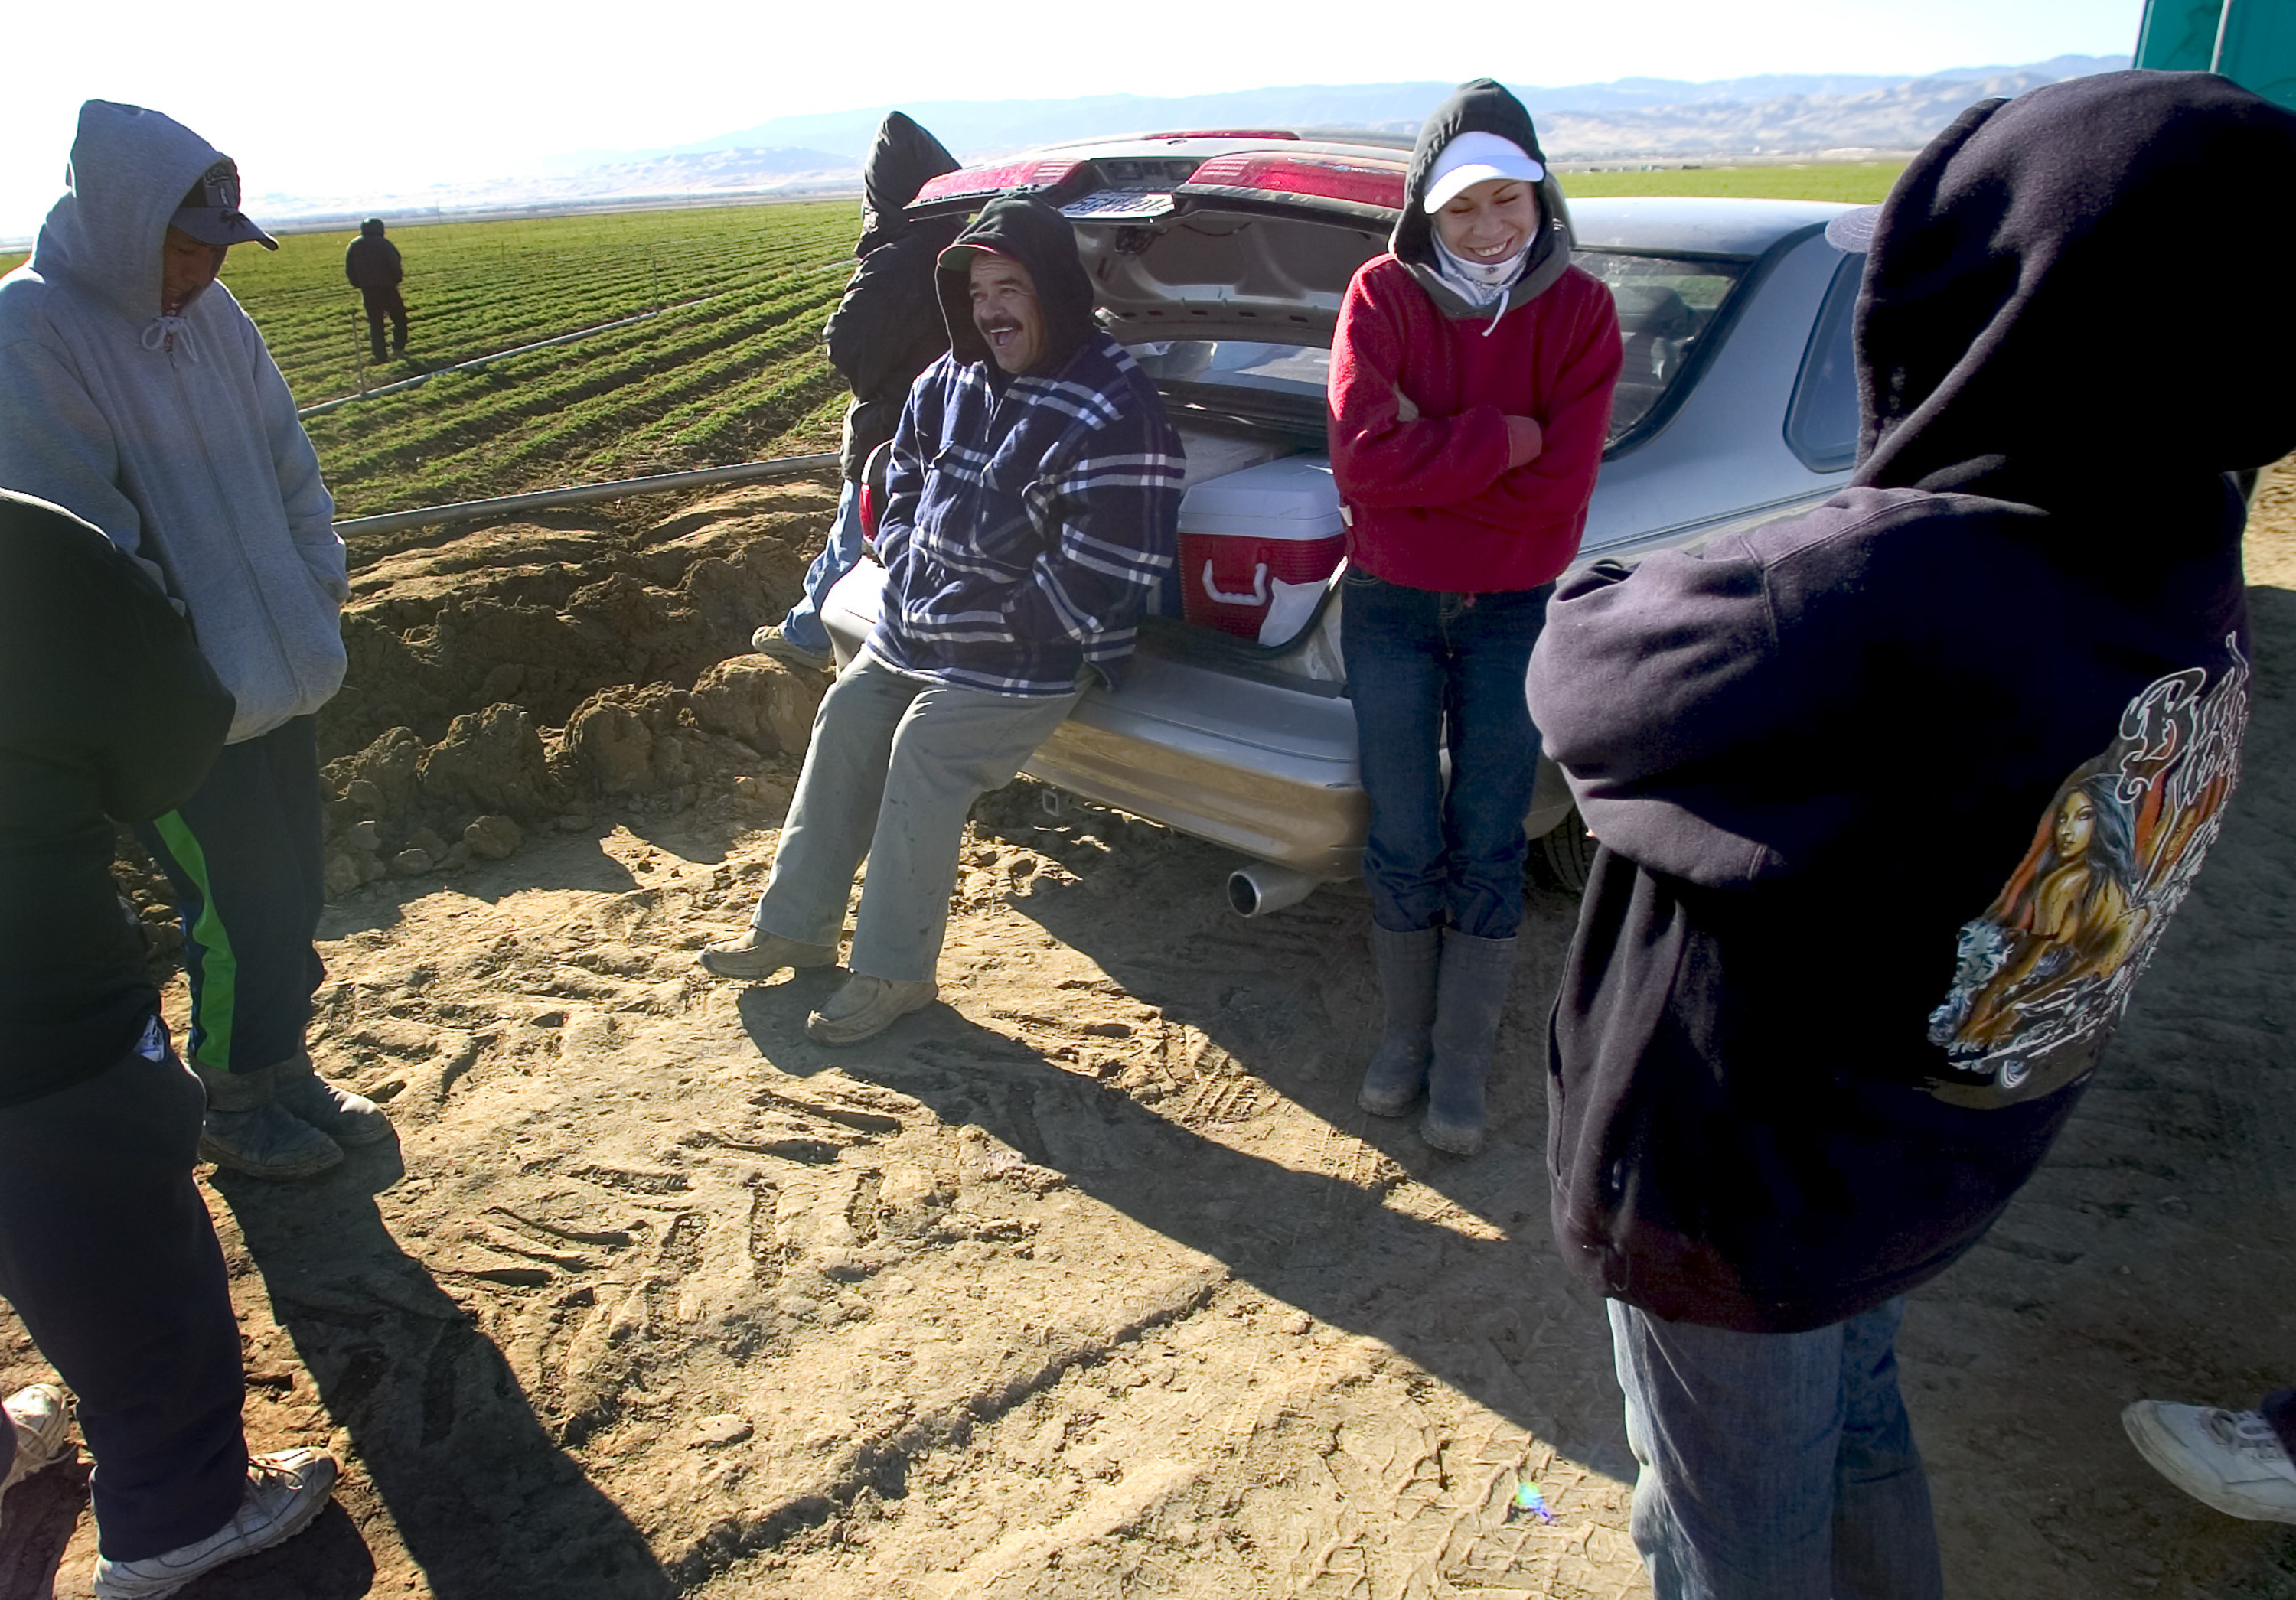 Farmworkers wait next to a carrot field near Coalinga, California. The morning frost made it impossible to tend to the carrots until the sun warmed the soil. 2007